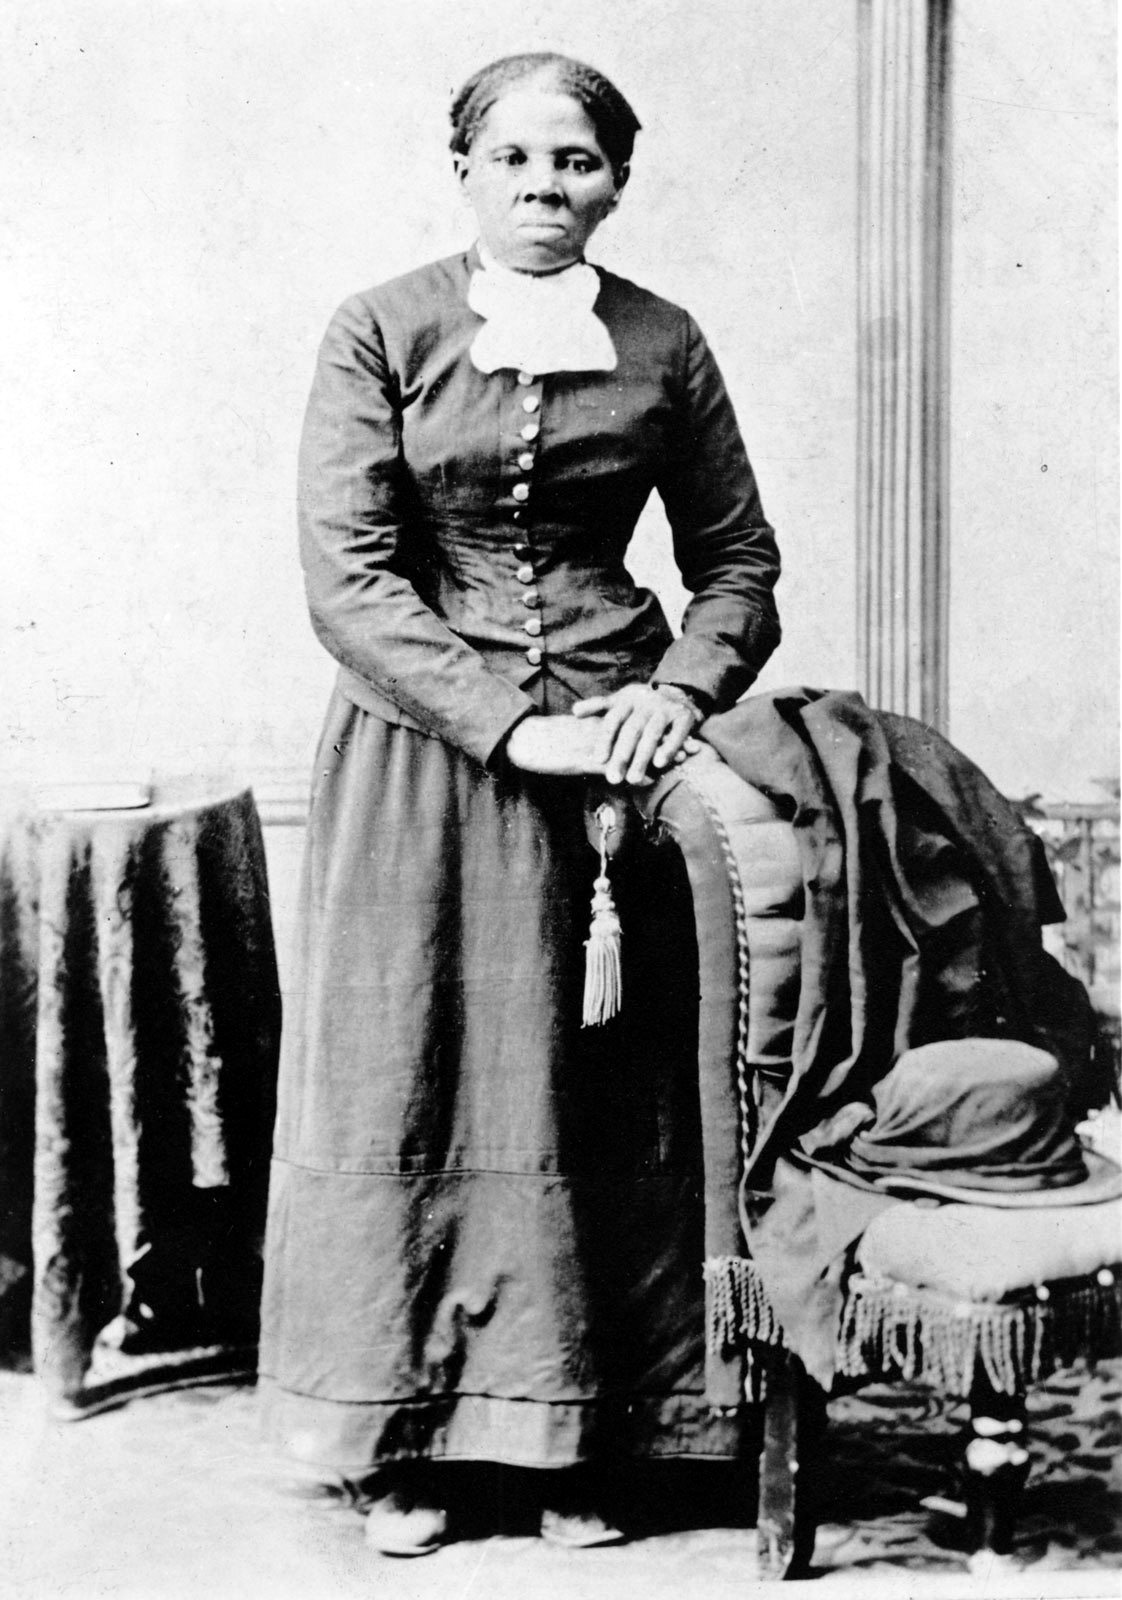 File:Harriet Tubman.jpg - Wikimedia Commons